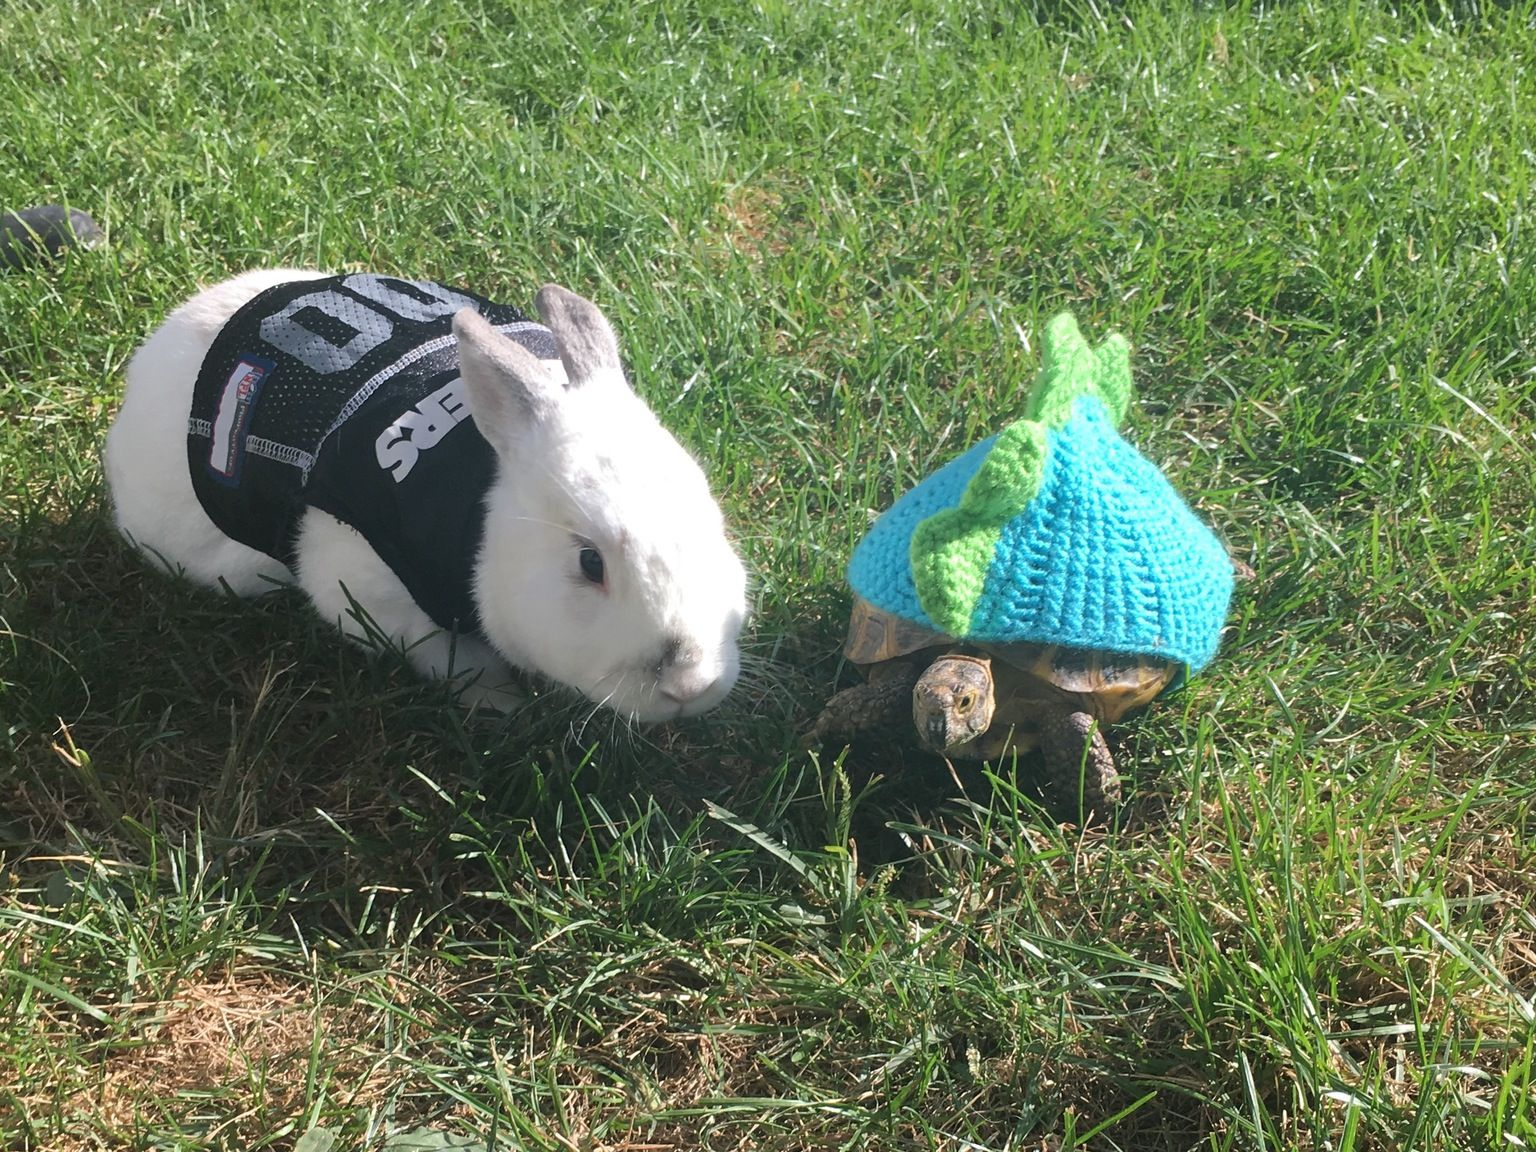 Richard and Sweet Pea gearing up for the Halloween Race http://ift.tt/2dTamBE